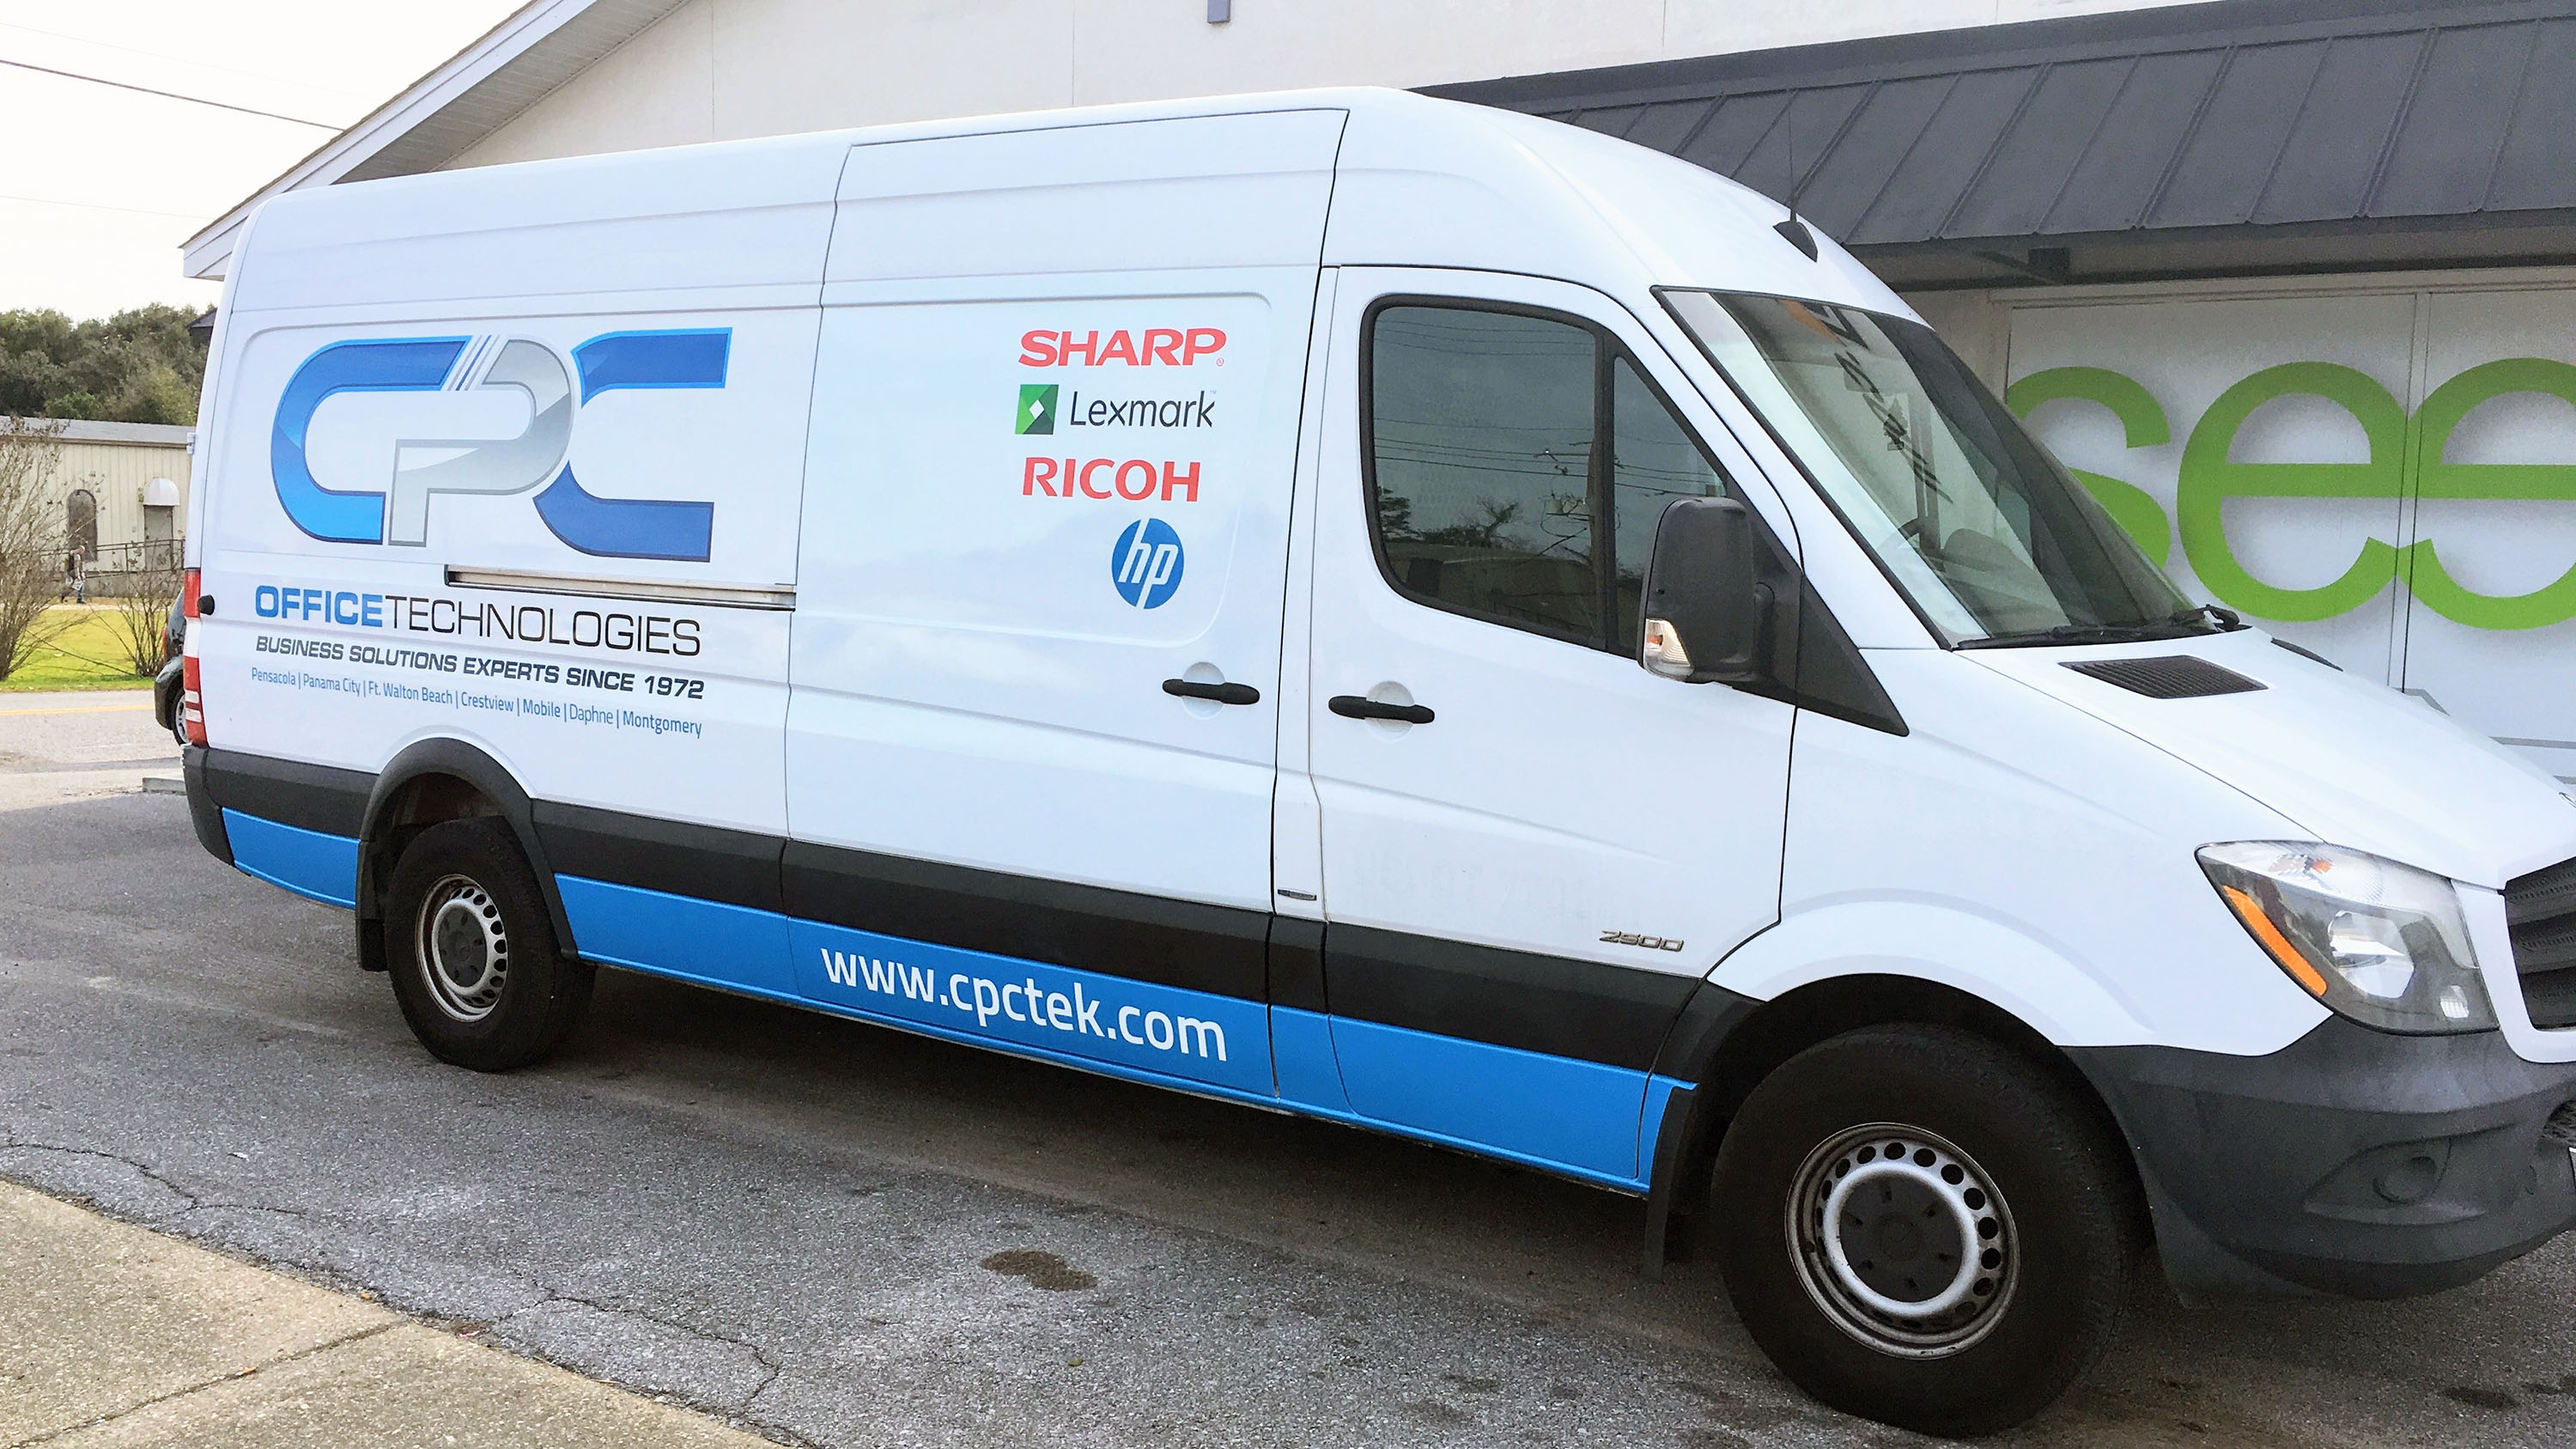 Printed graphics on CPC cargo van - Pensacola Sign vehicle graphics